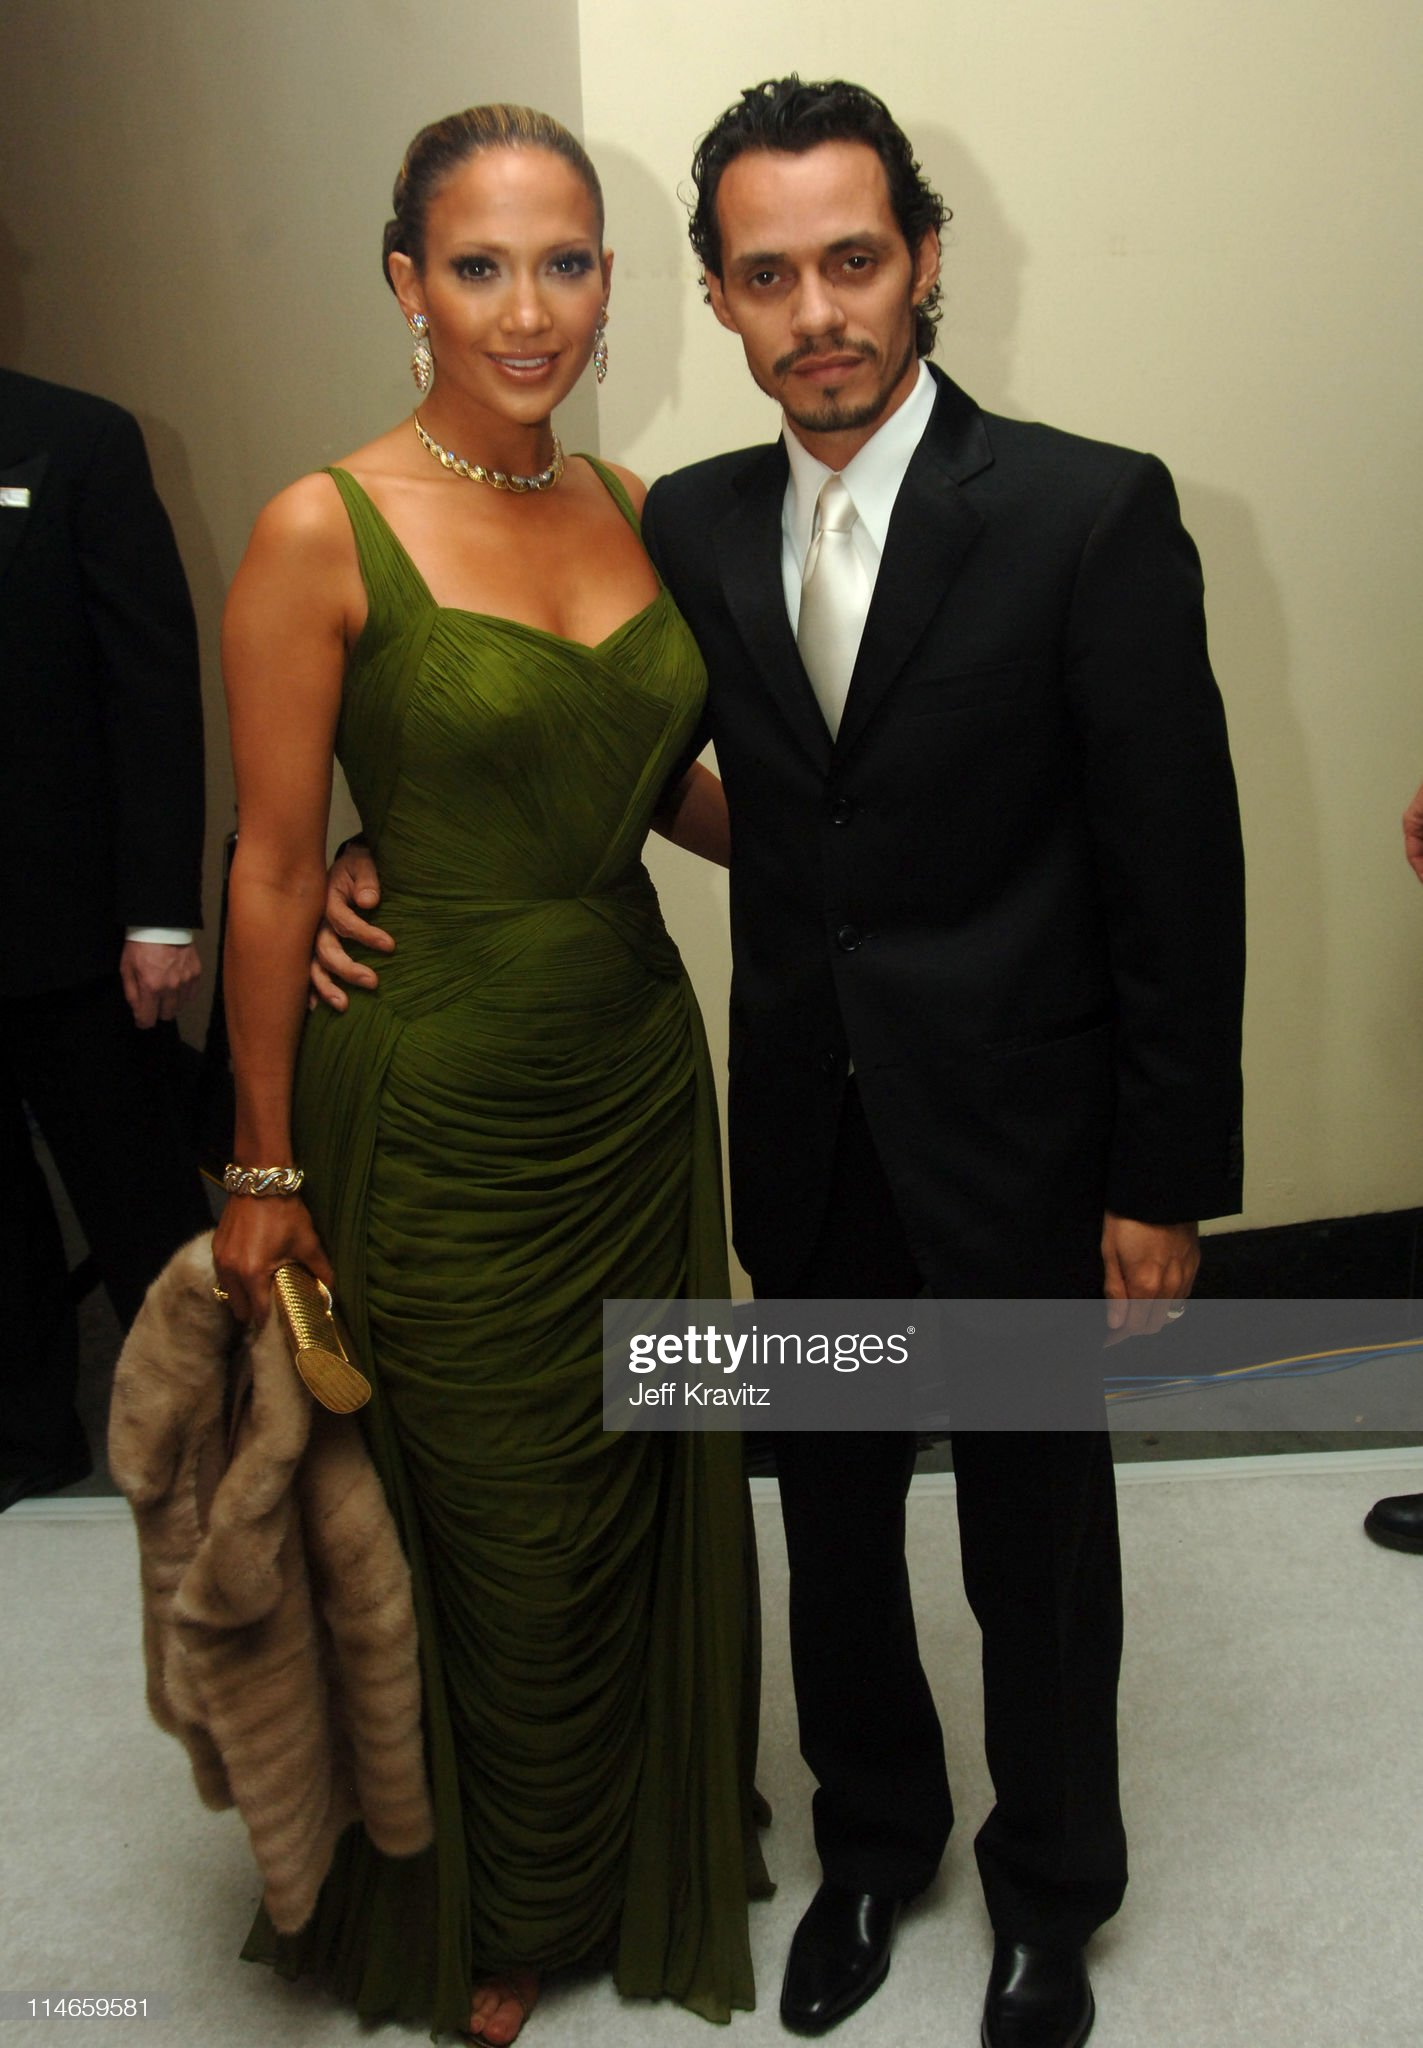 ¿Cuánto mide Marc Anthony? - Altura - Real height Jennifer-lopez-presenter-and-marc-anthony-during-the-78th-annual-picture-id114659581?s=2048x2048